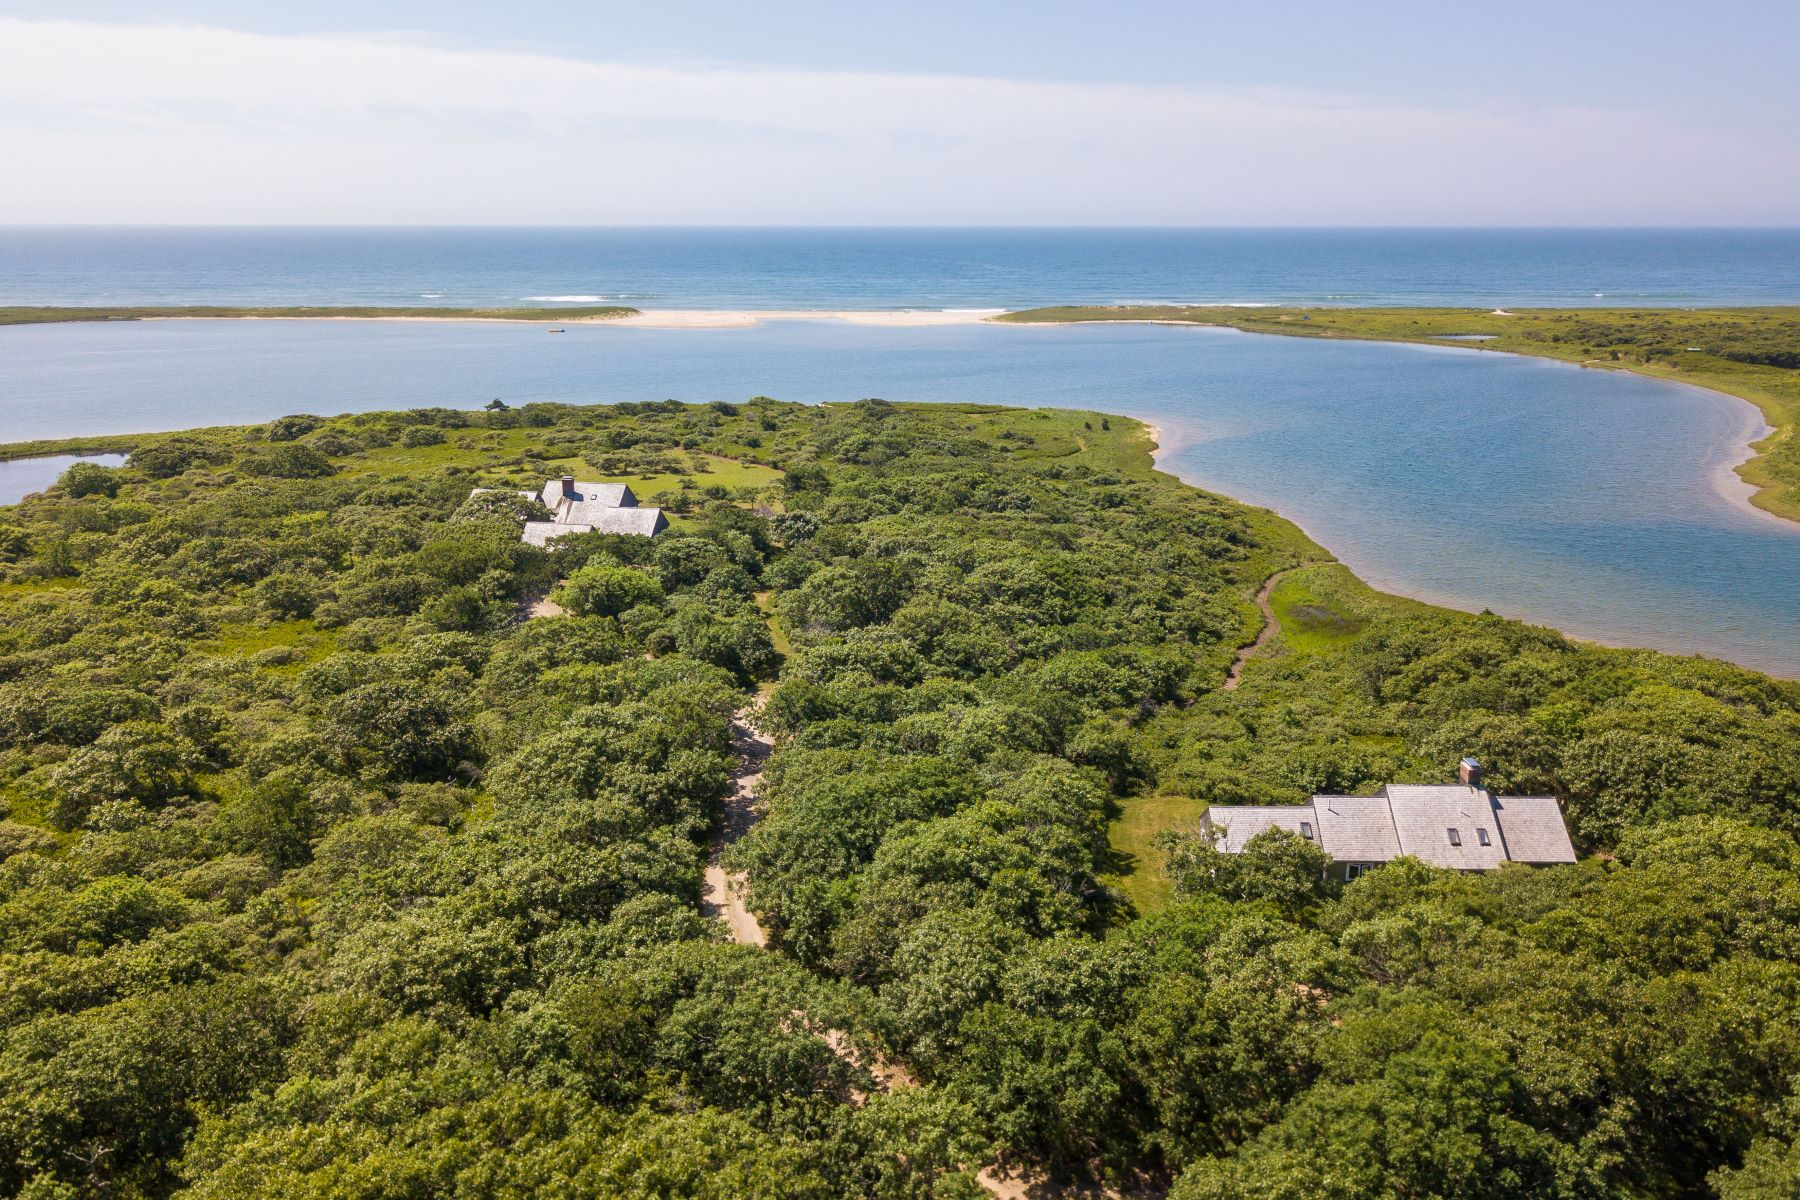 Casa Unifamiliar por un Venta en Extraordinary Property on Oyster Pond 50 Oyster Watcha Road Edgartown, Massachusetts 02539 Estados Unidos